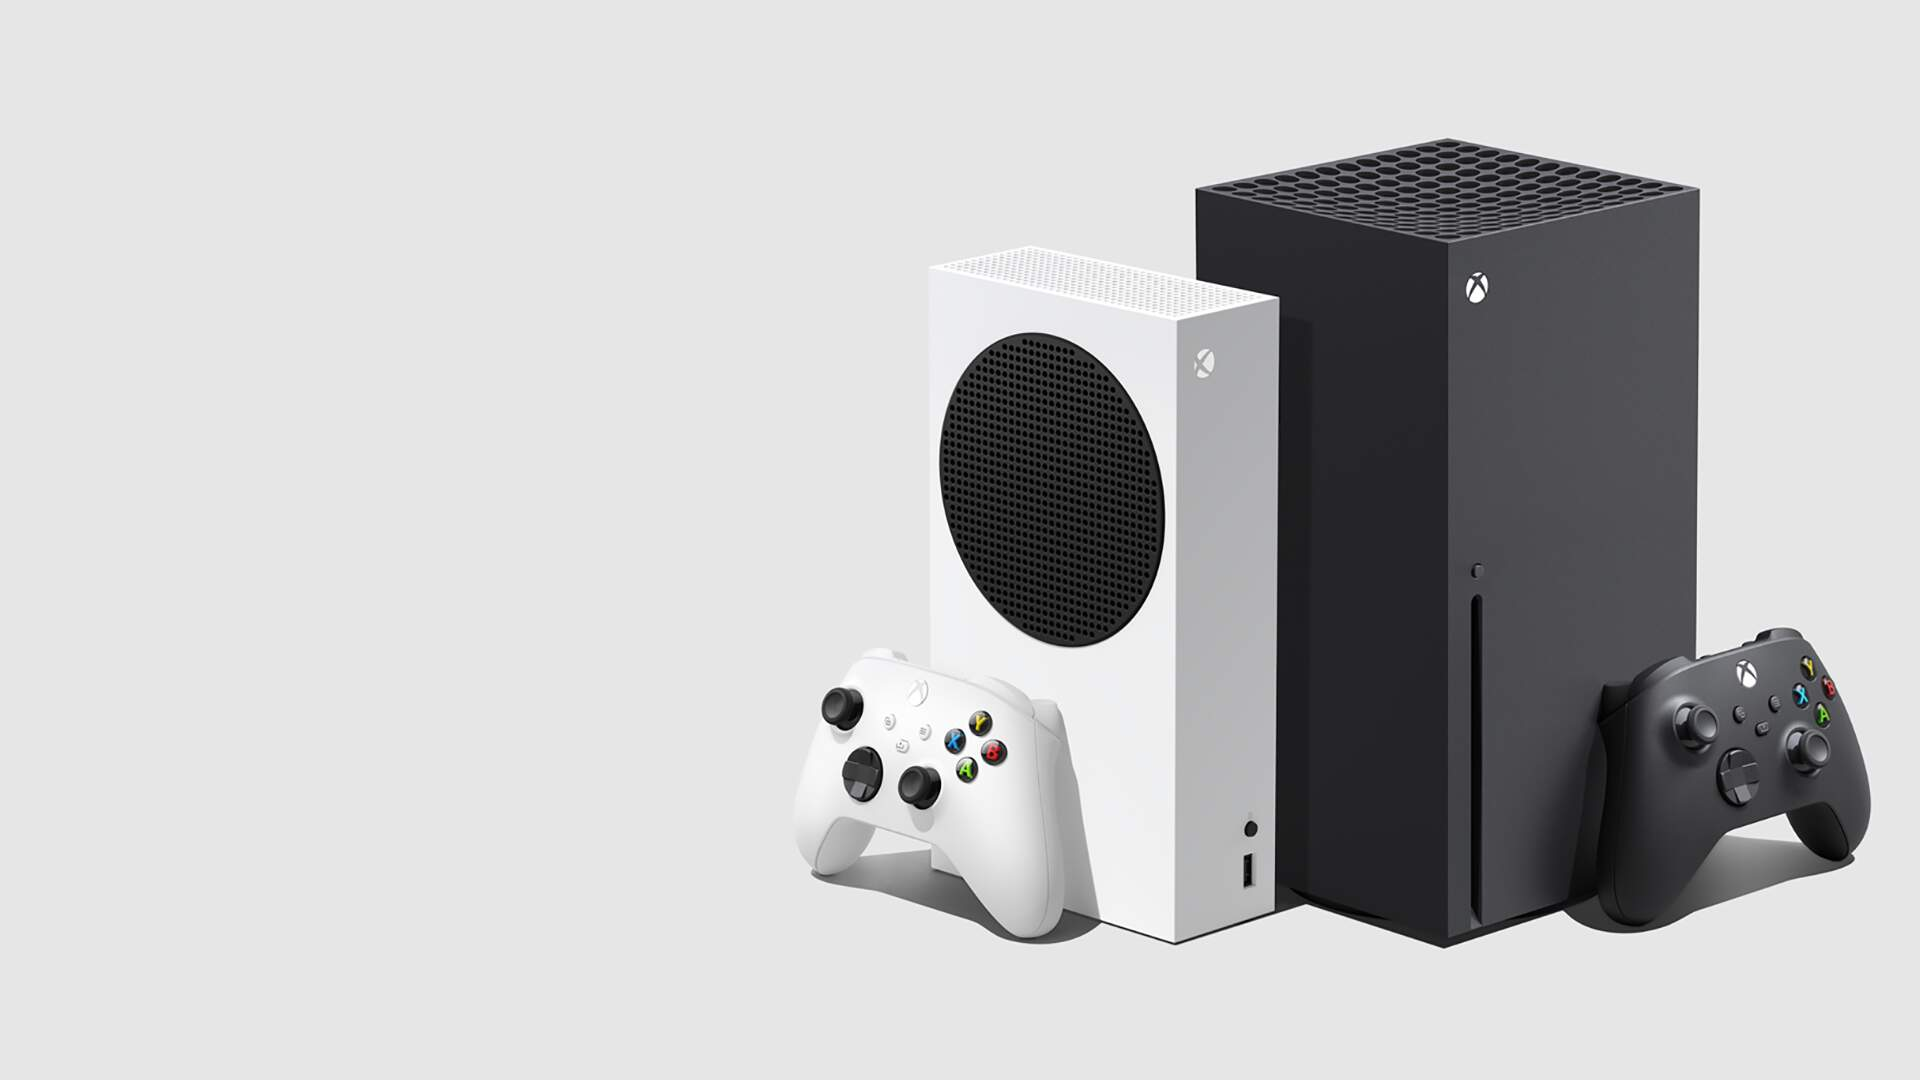 Xbox Series X Review: Microsoft's Powerful Next-Gen Console is Still Lacking Its Killer App